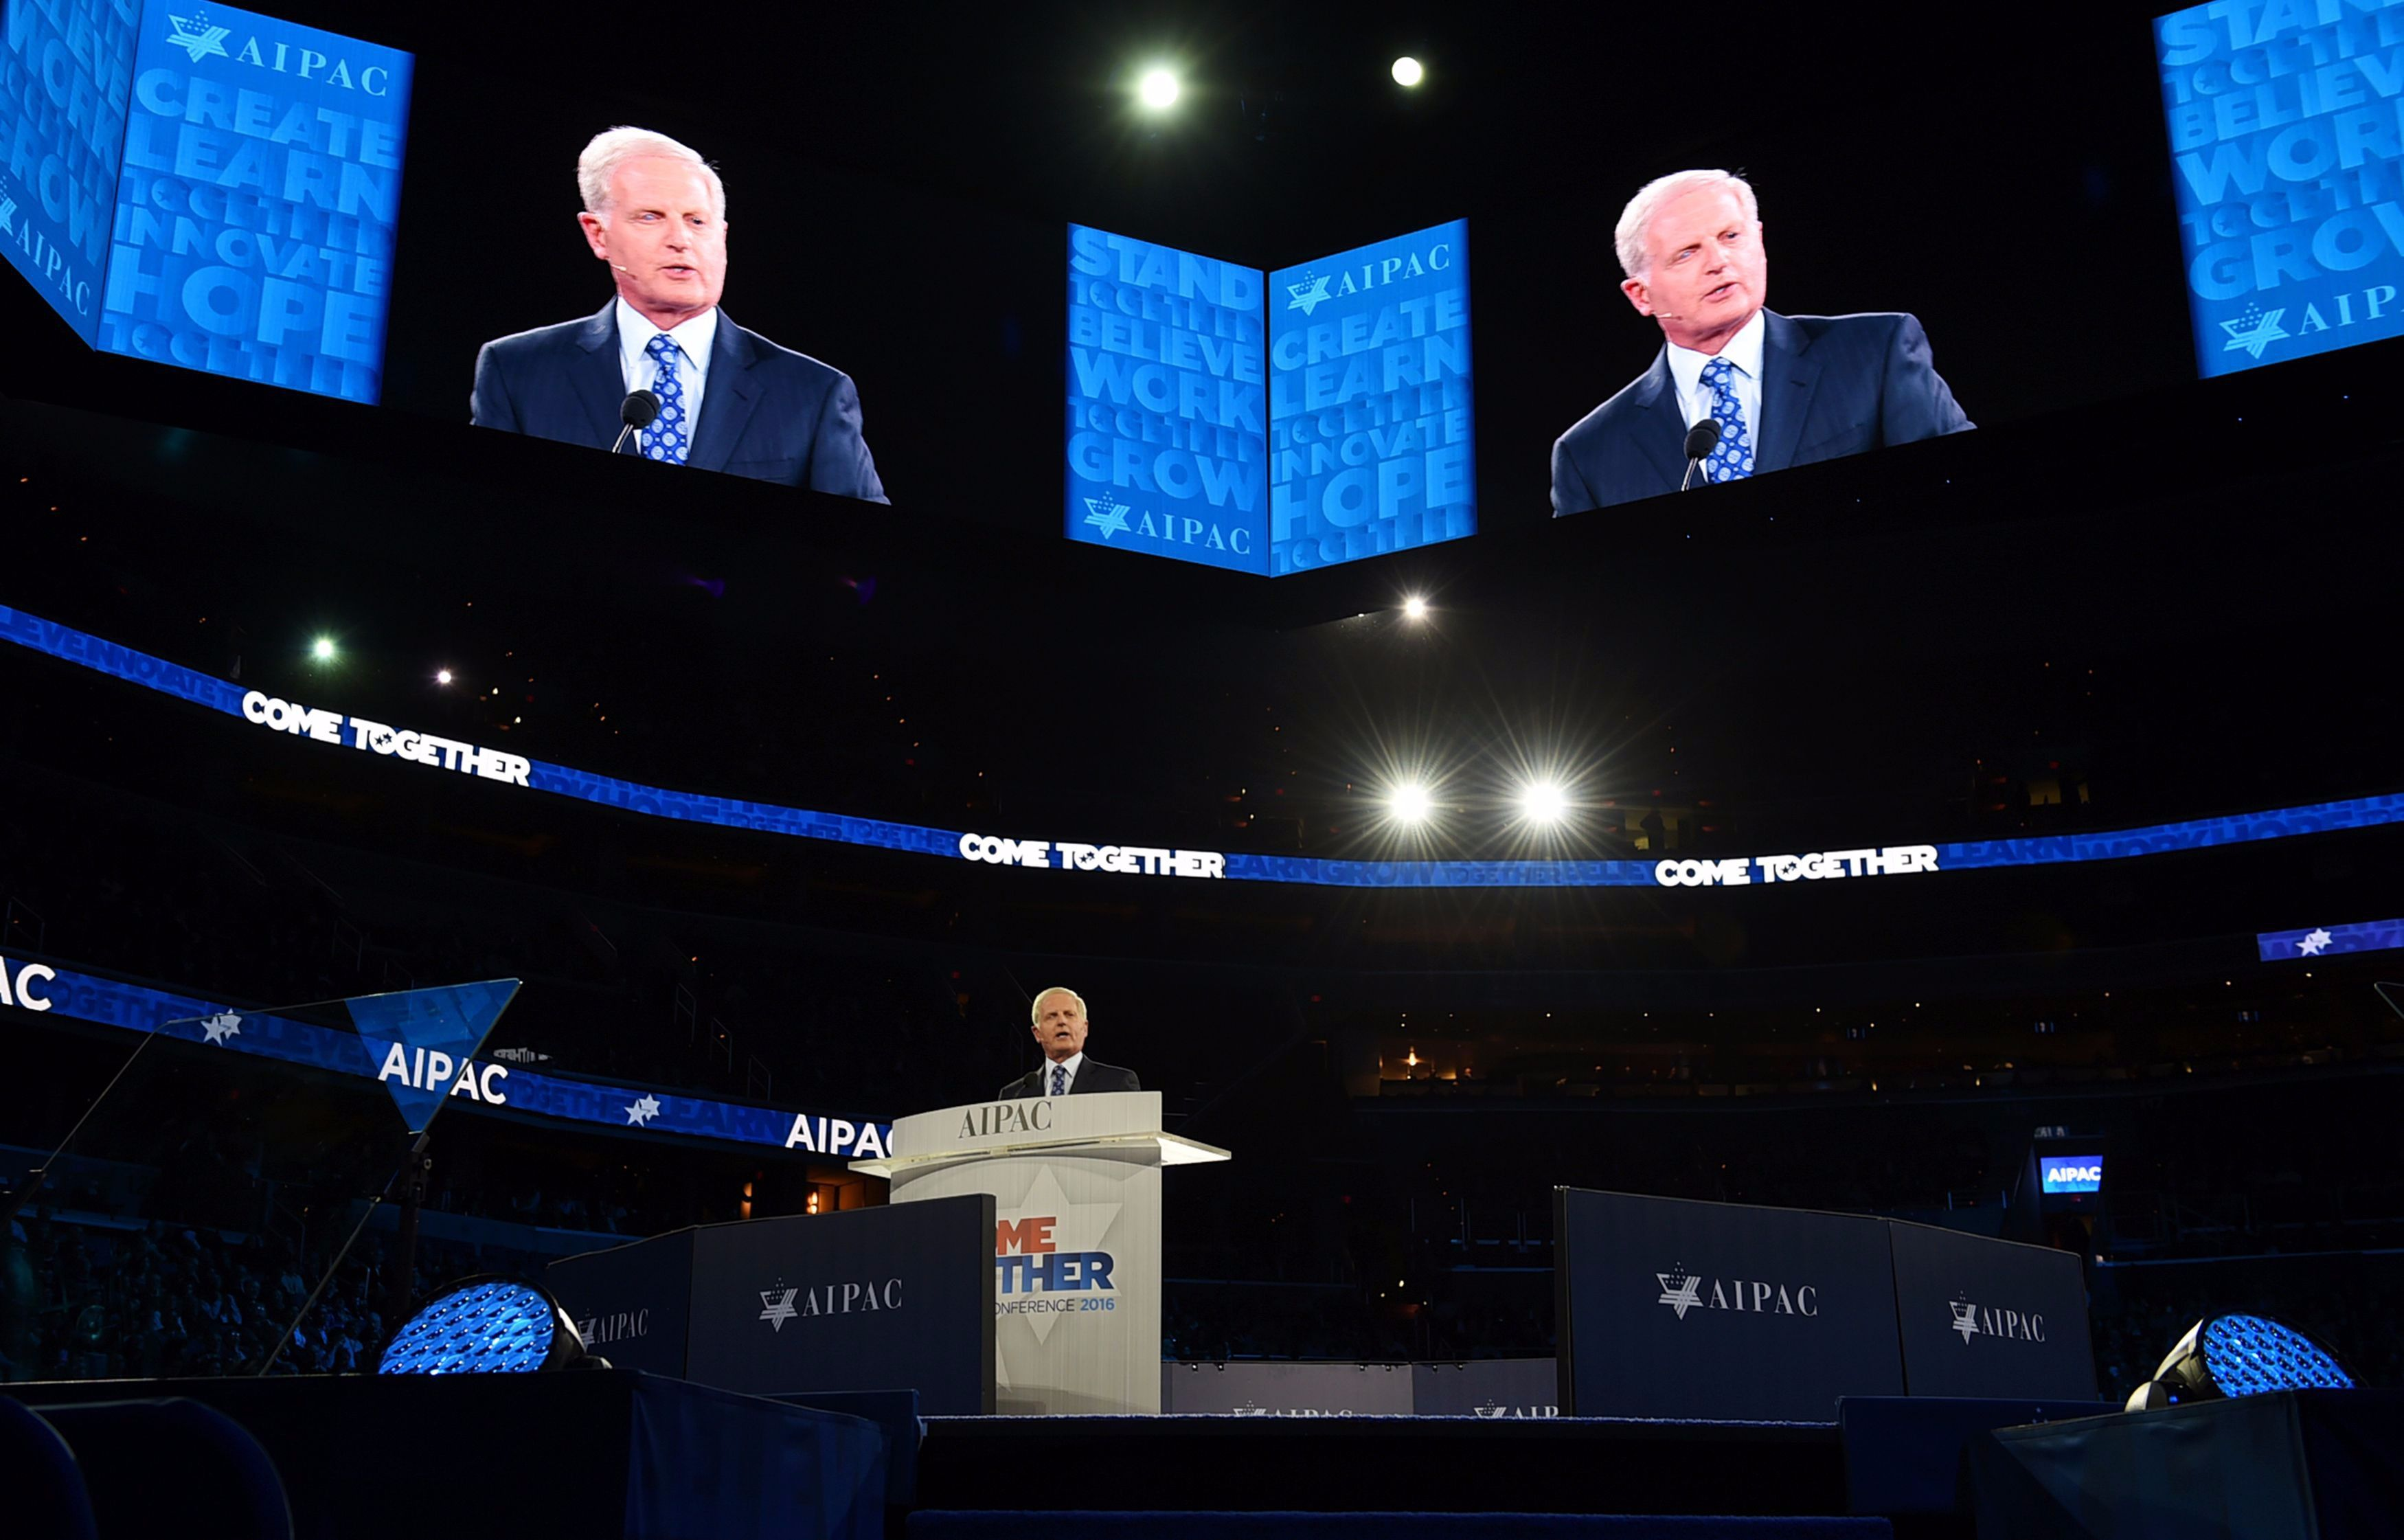 AIPAC CEO Howard Kohr speaks at the start of the AIPAC 2016 Policy Conference on March 20, 2016 in Washington, DC.